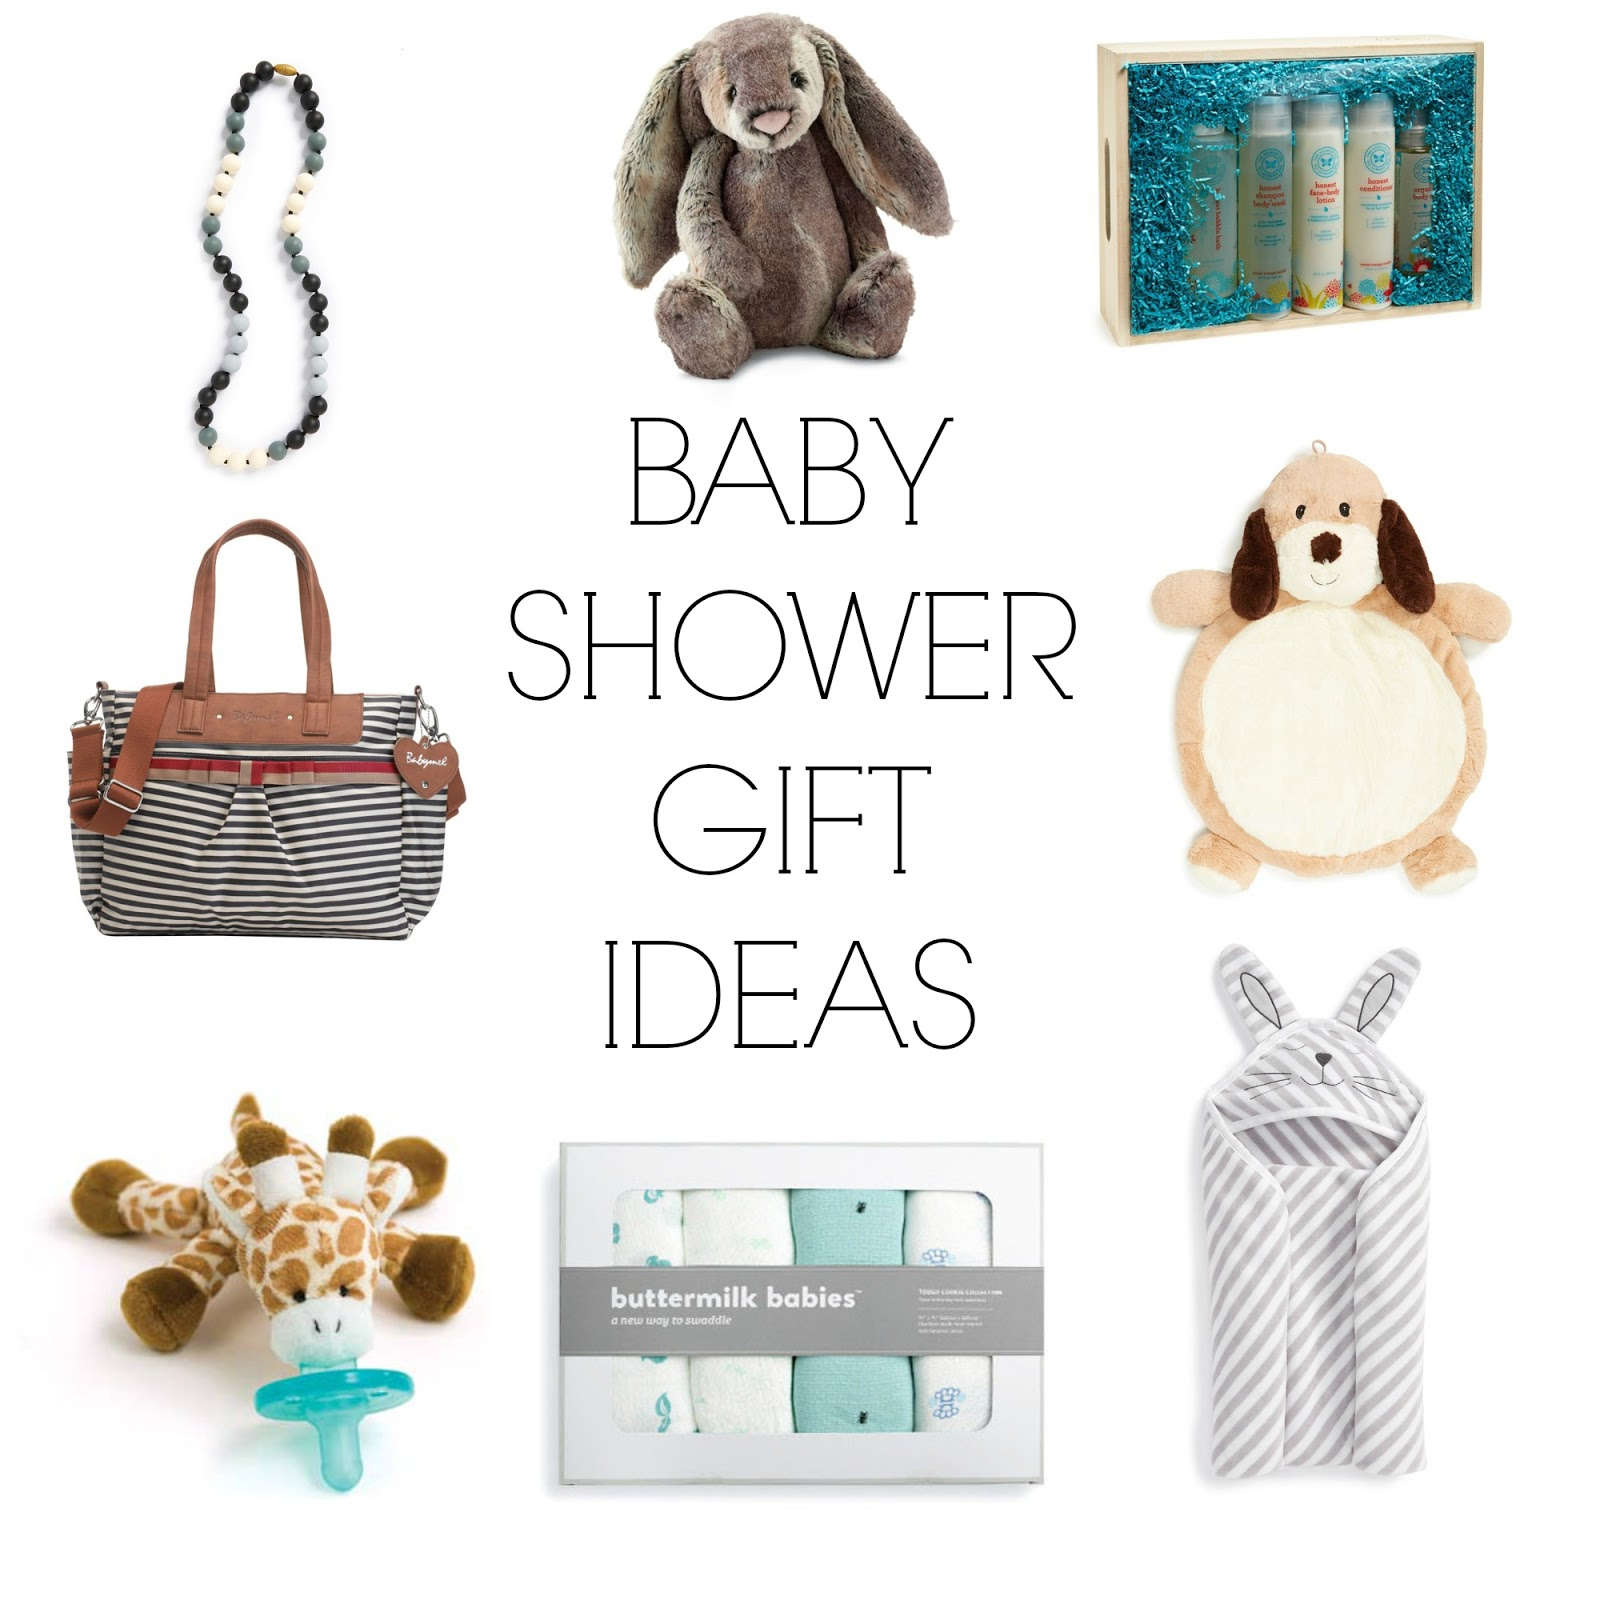 Give Away Gift Ideas For Weddings: Baby Shower Gift Ideas {+ Buttermilk Babies Giveaway